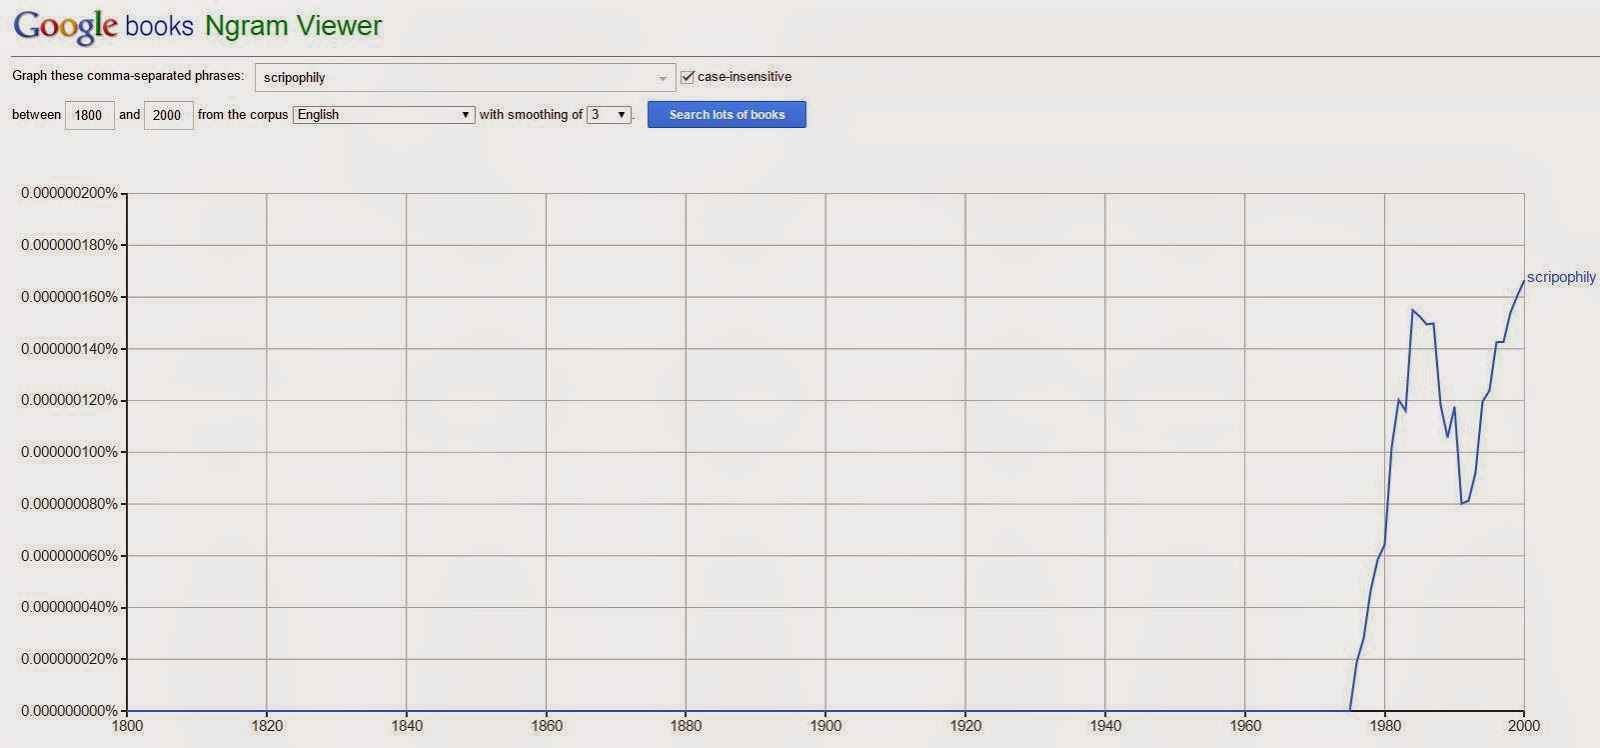 Google Ngram Viewer chart of the word scripophily